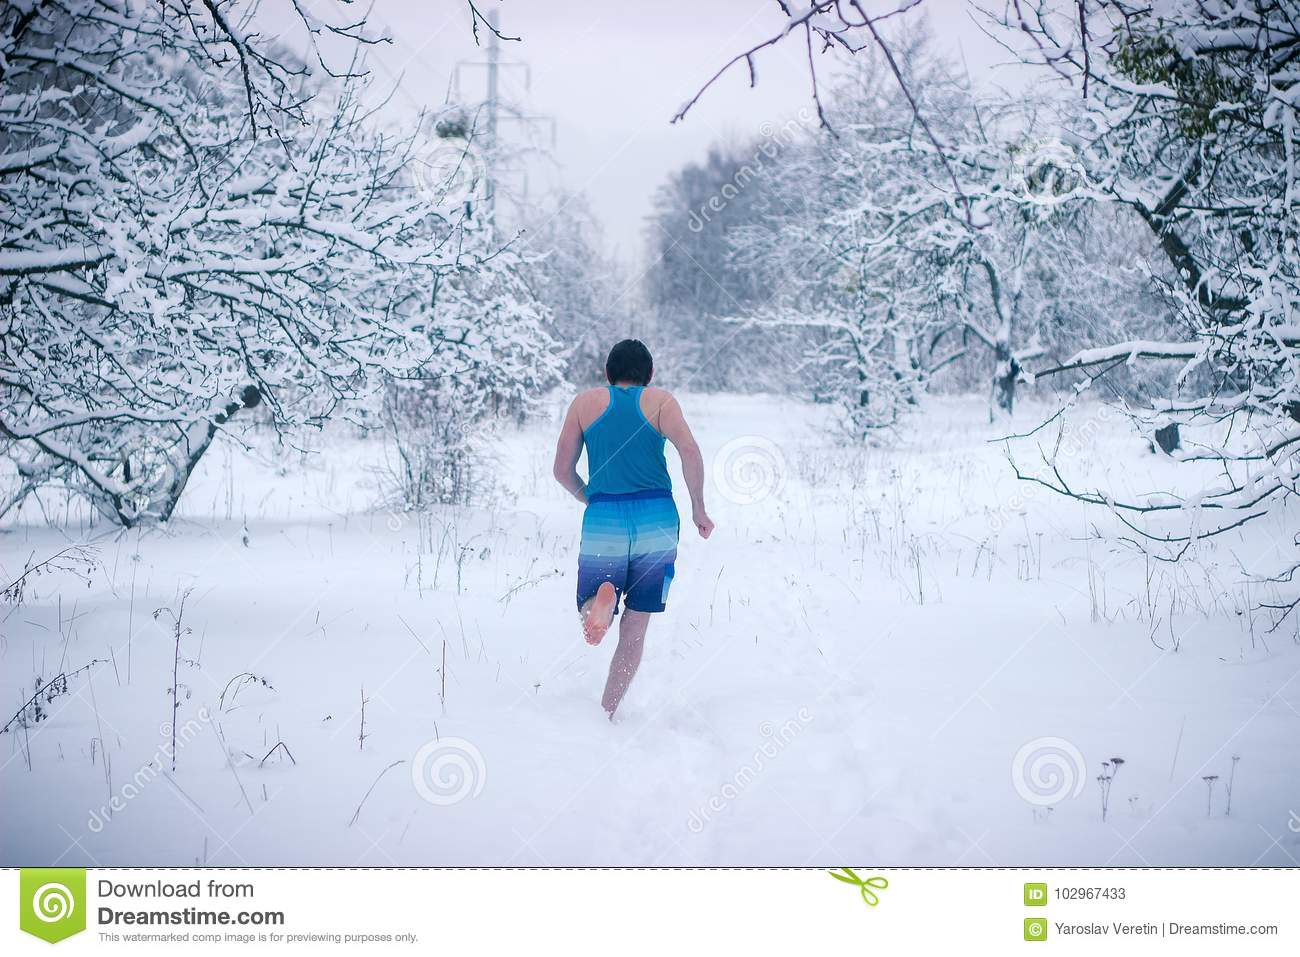 Running in the snow naked